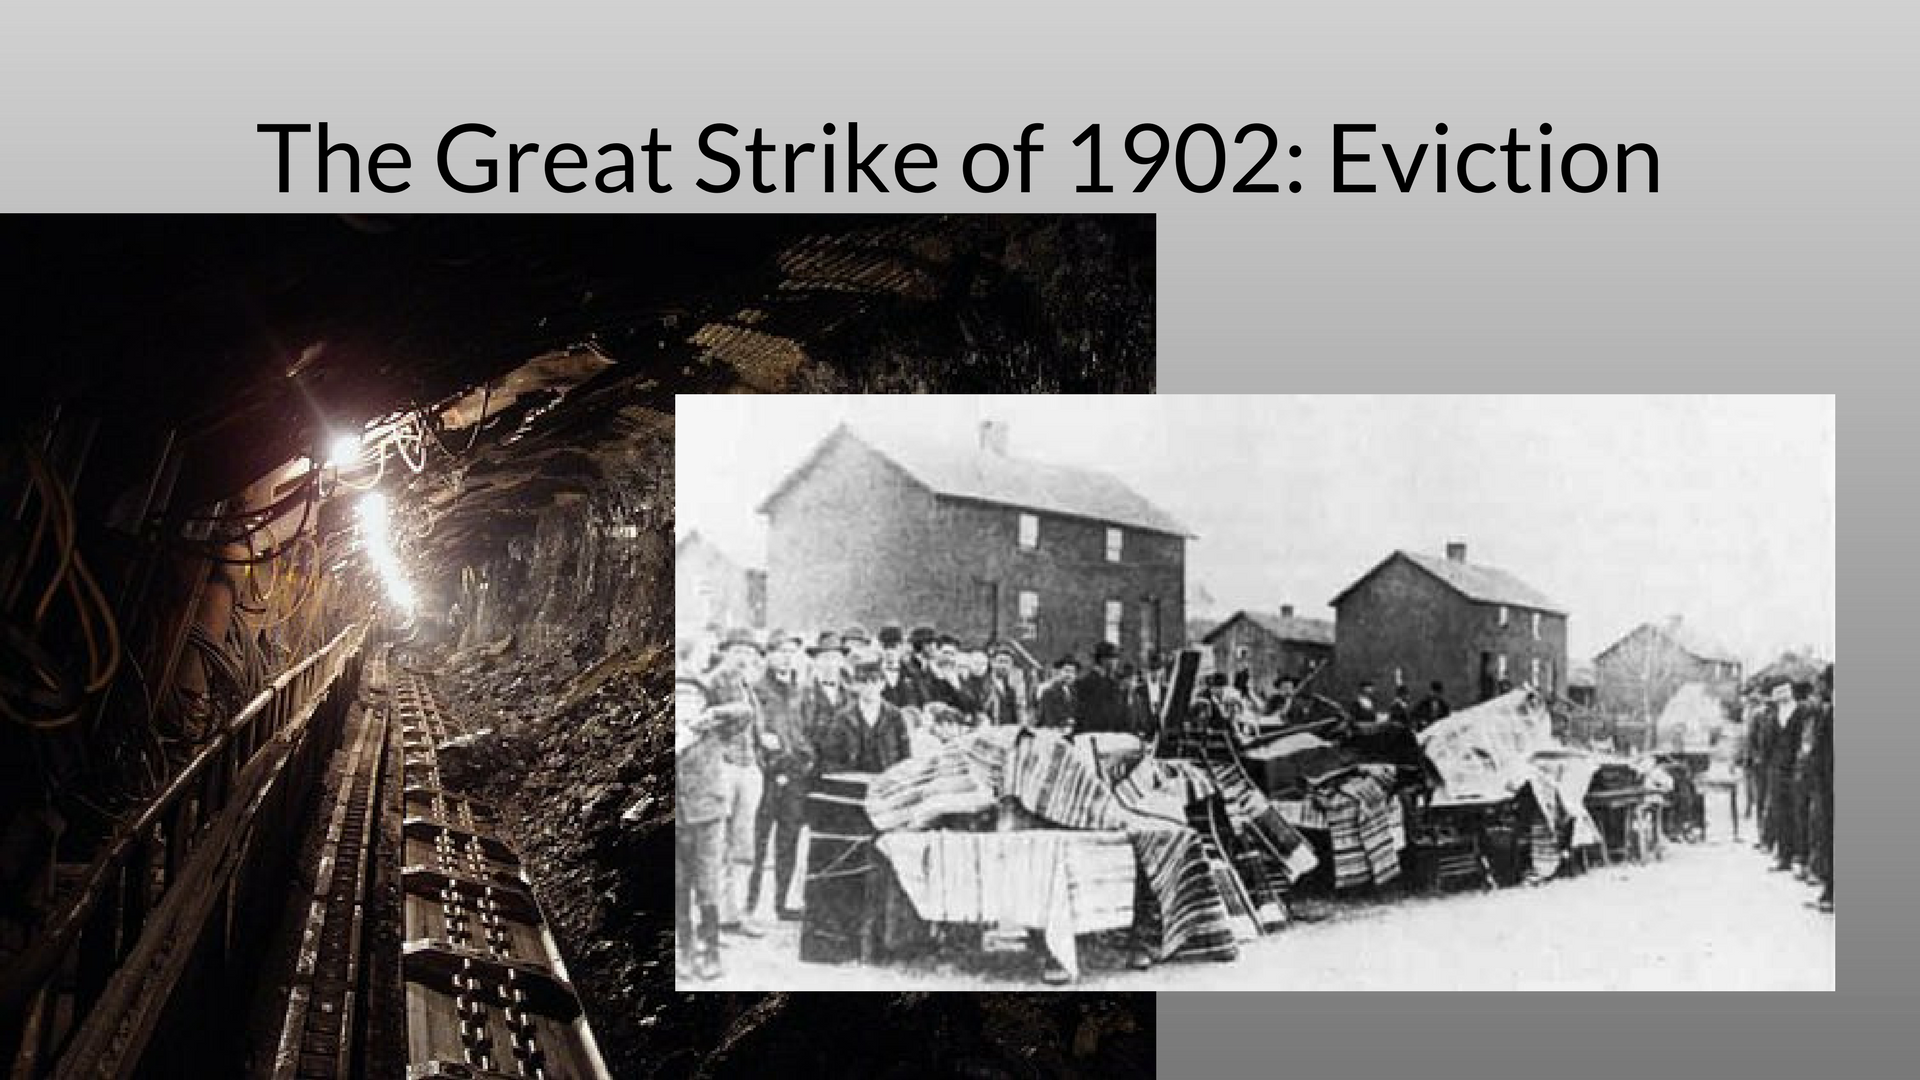 coal miners' strike in 1902